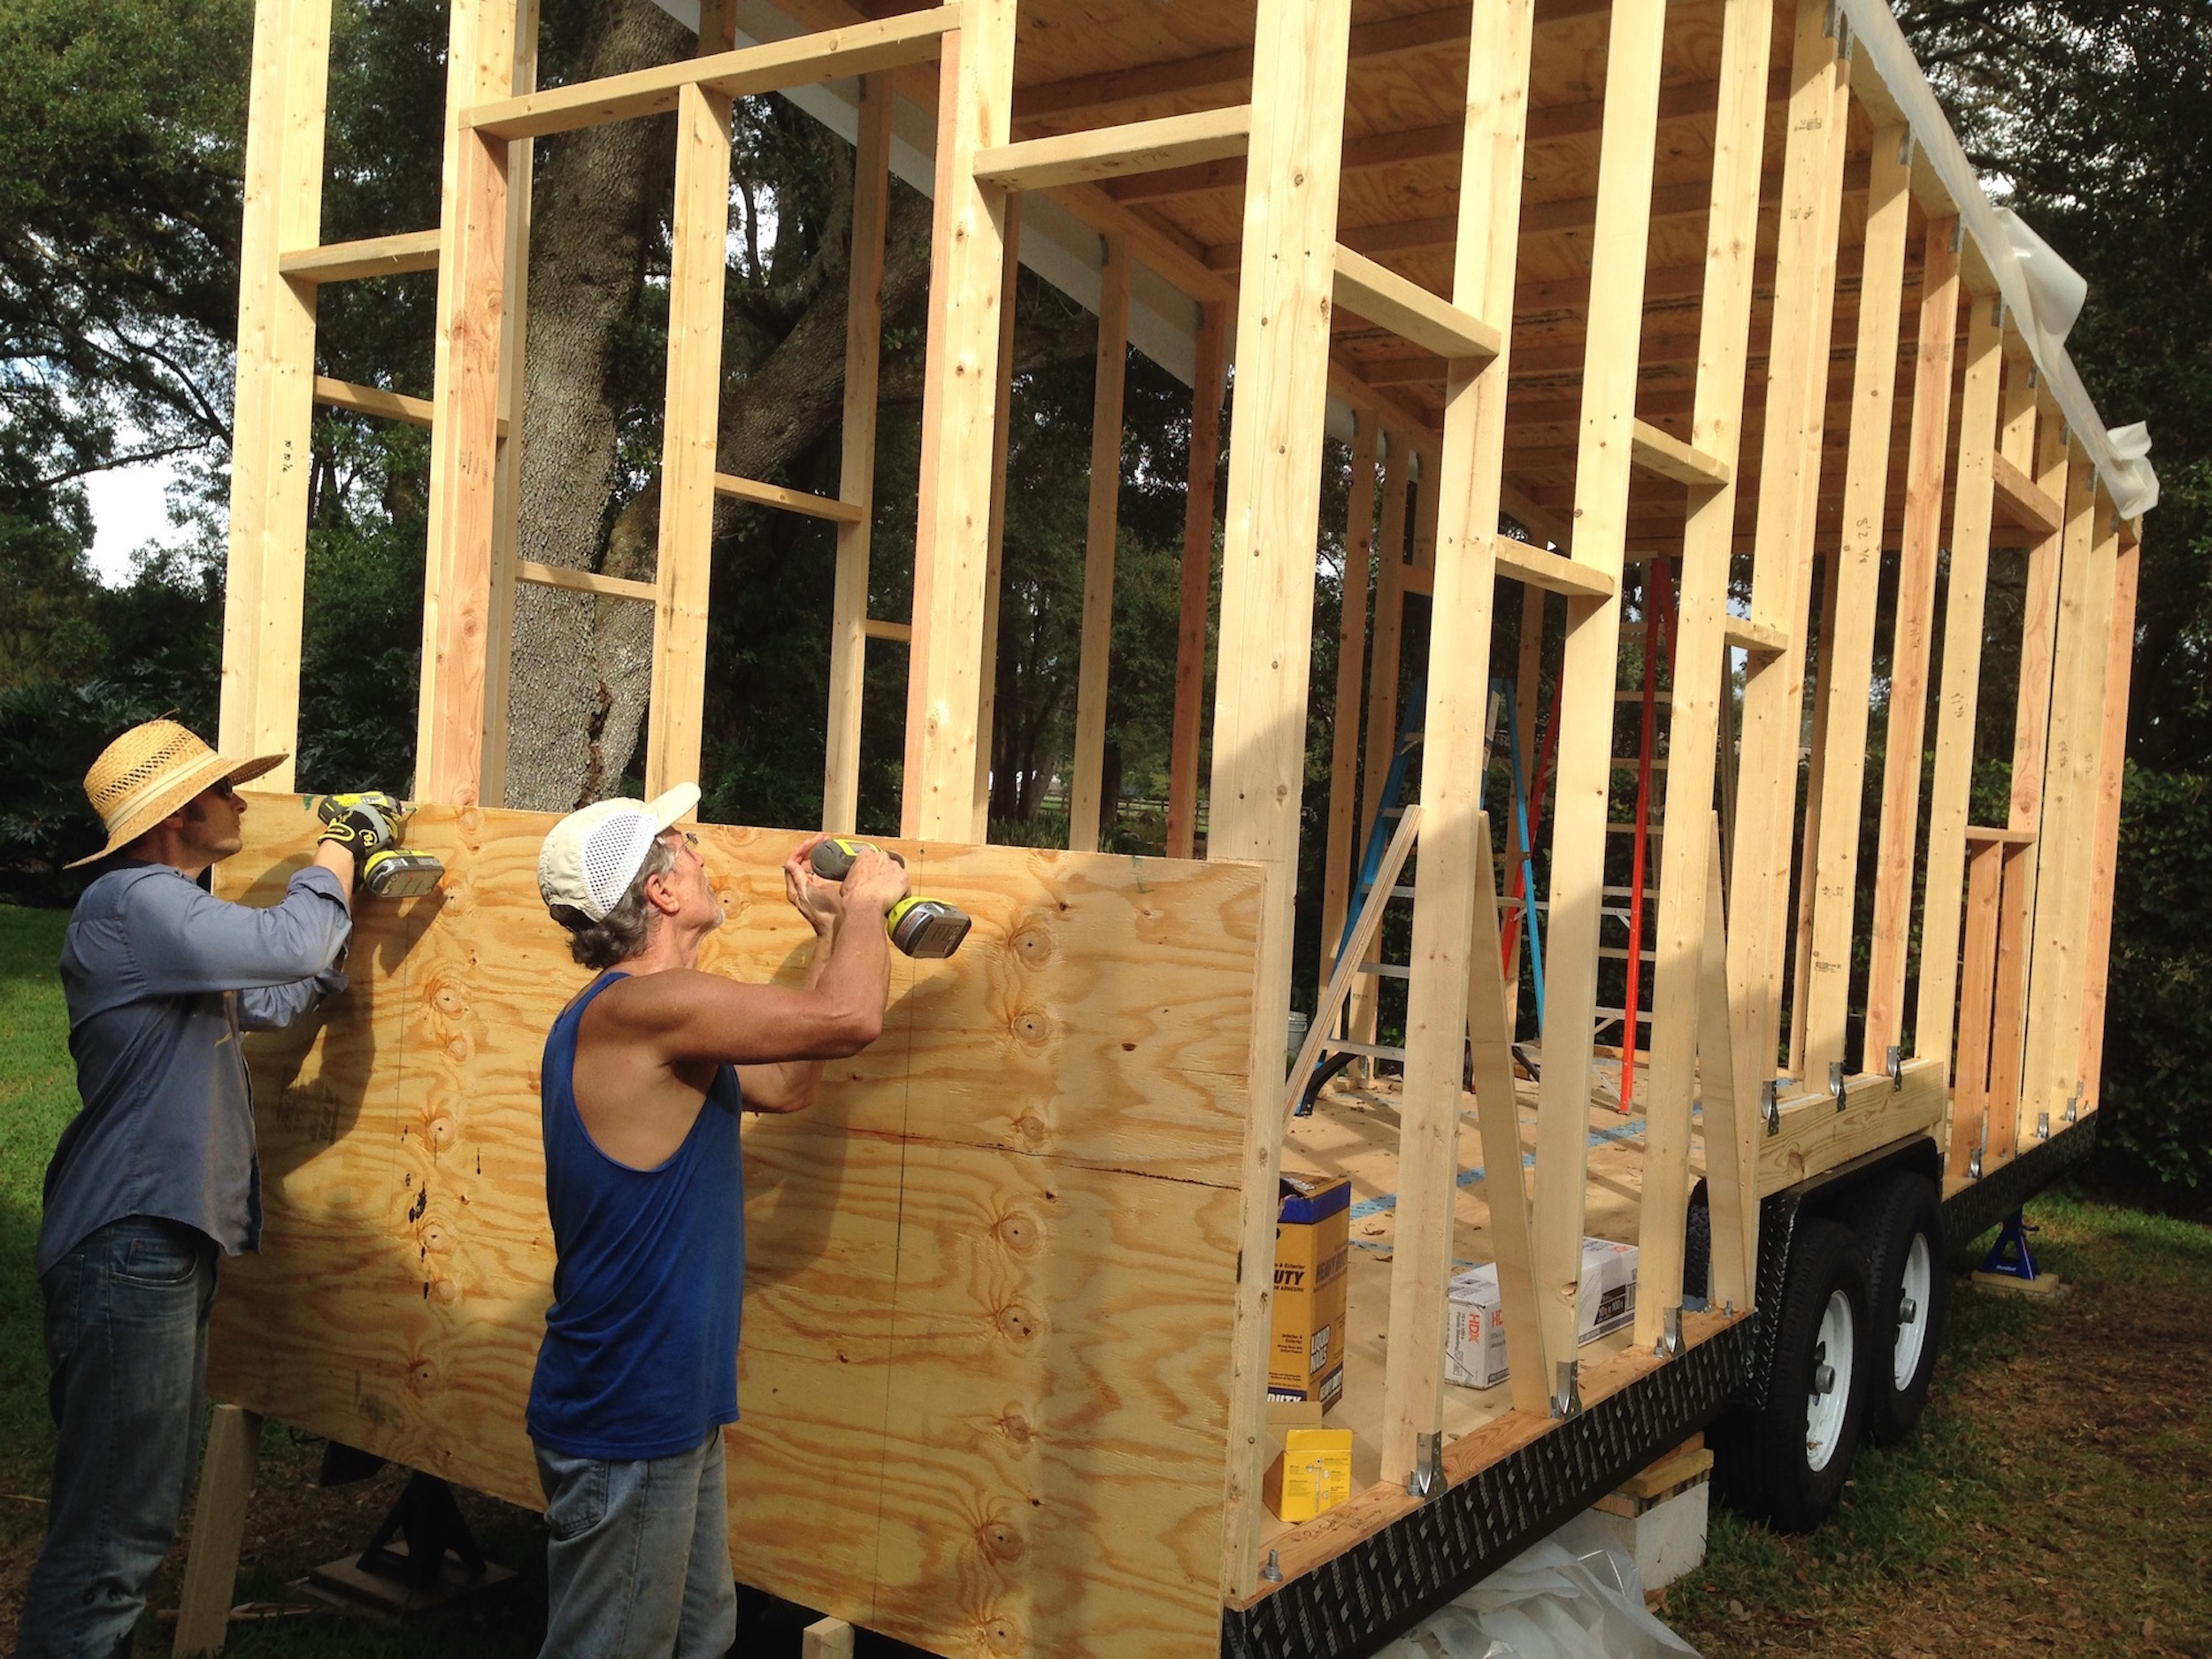 tiny house construction. Tampa Attorney Builds Tiny House With Son To Promote Quality Construction E